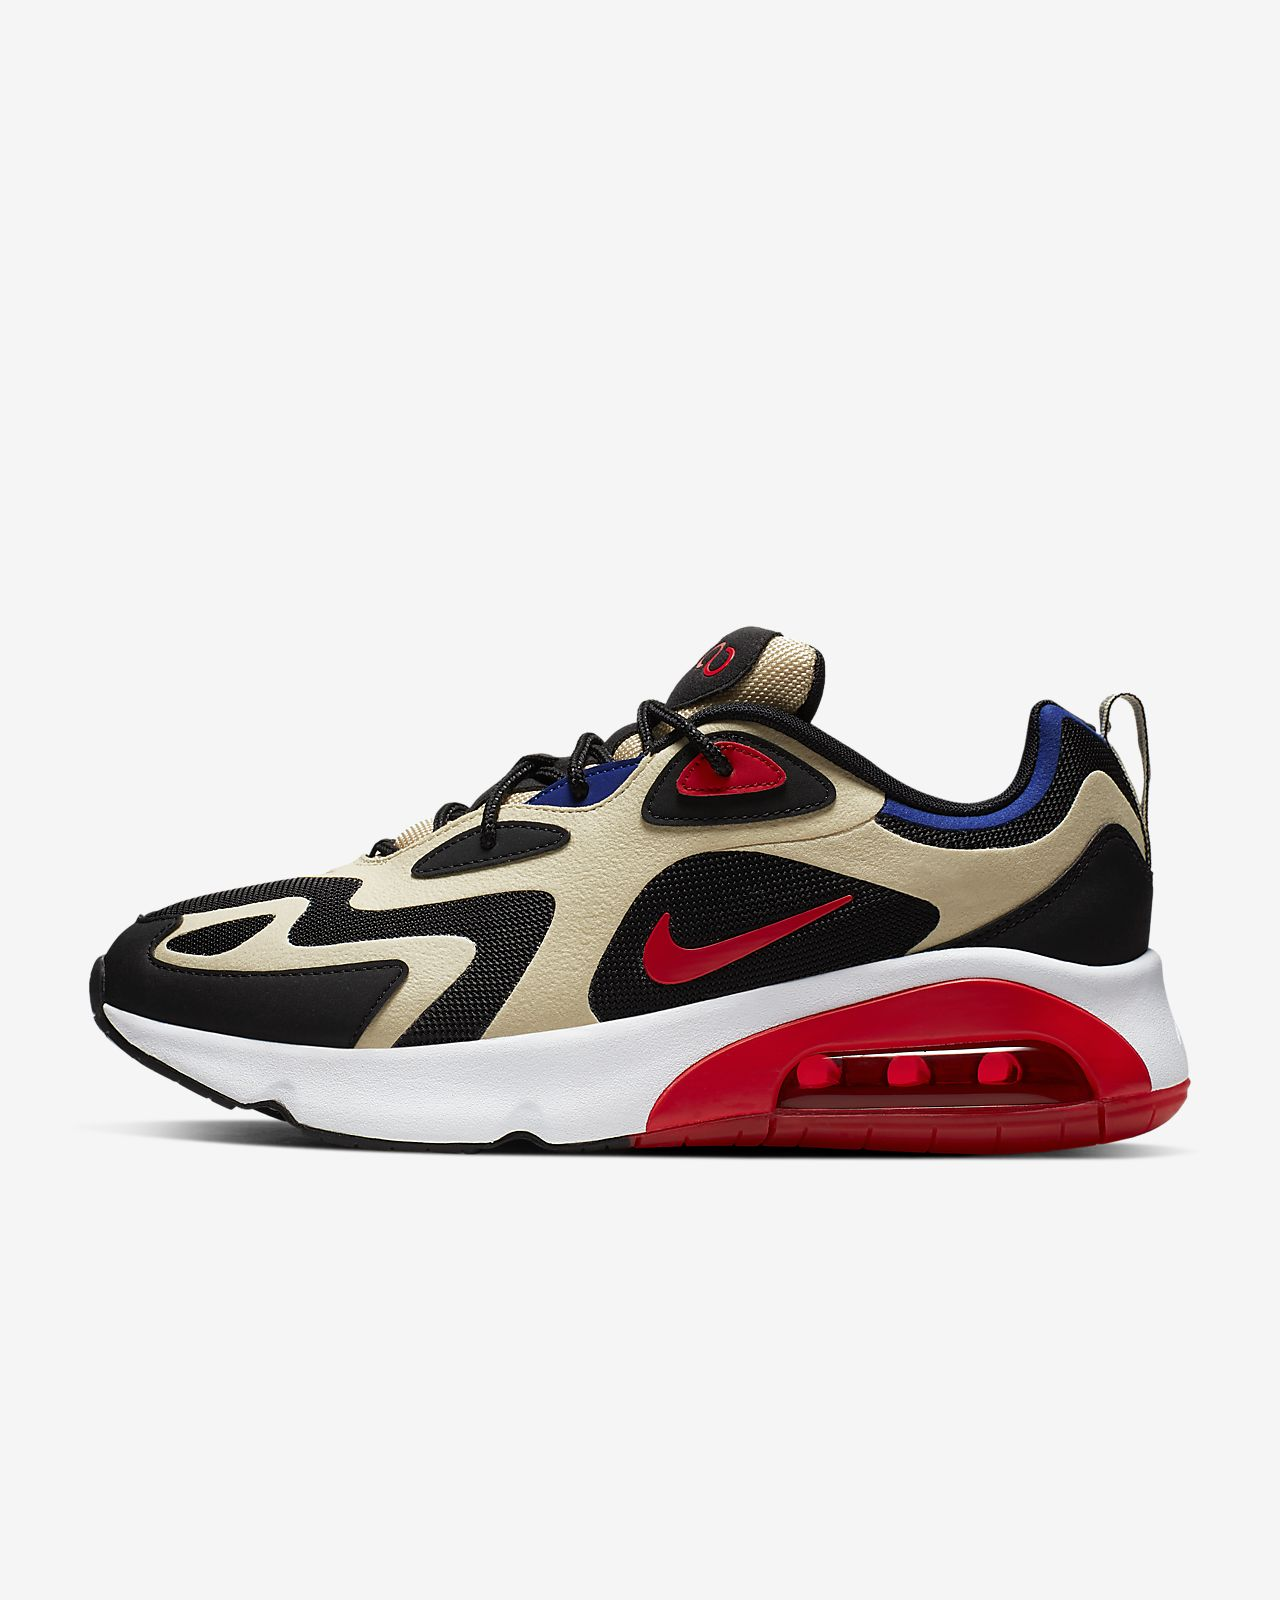 Nike Air Max 200 (World's Fastest Man) Herrenschuh